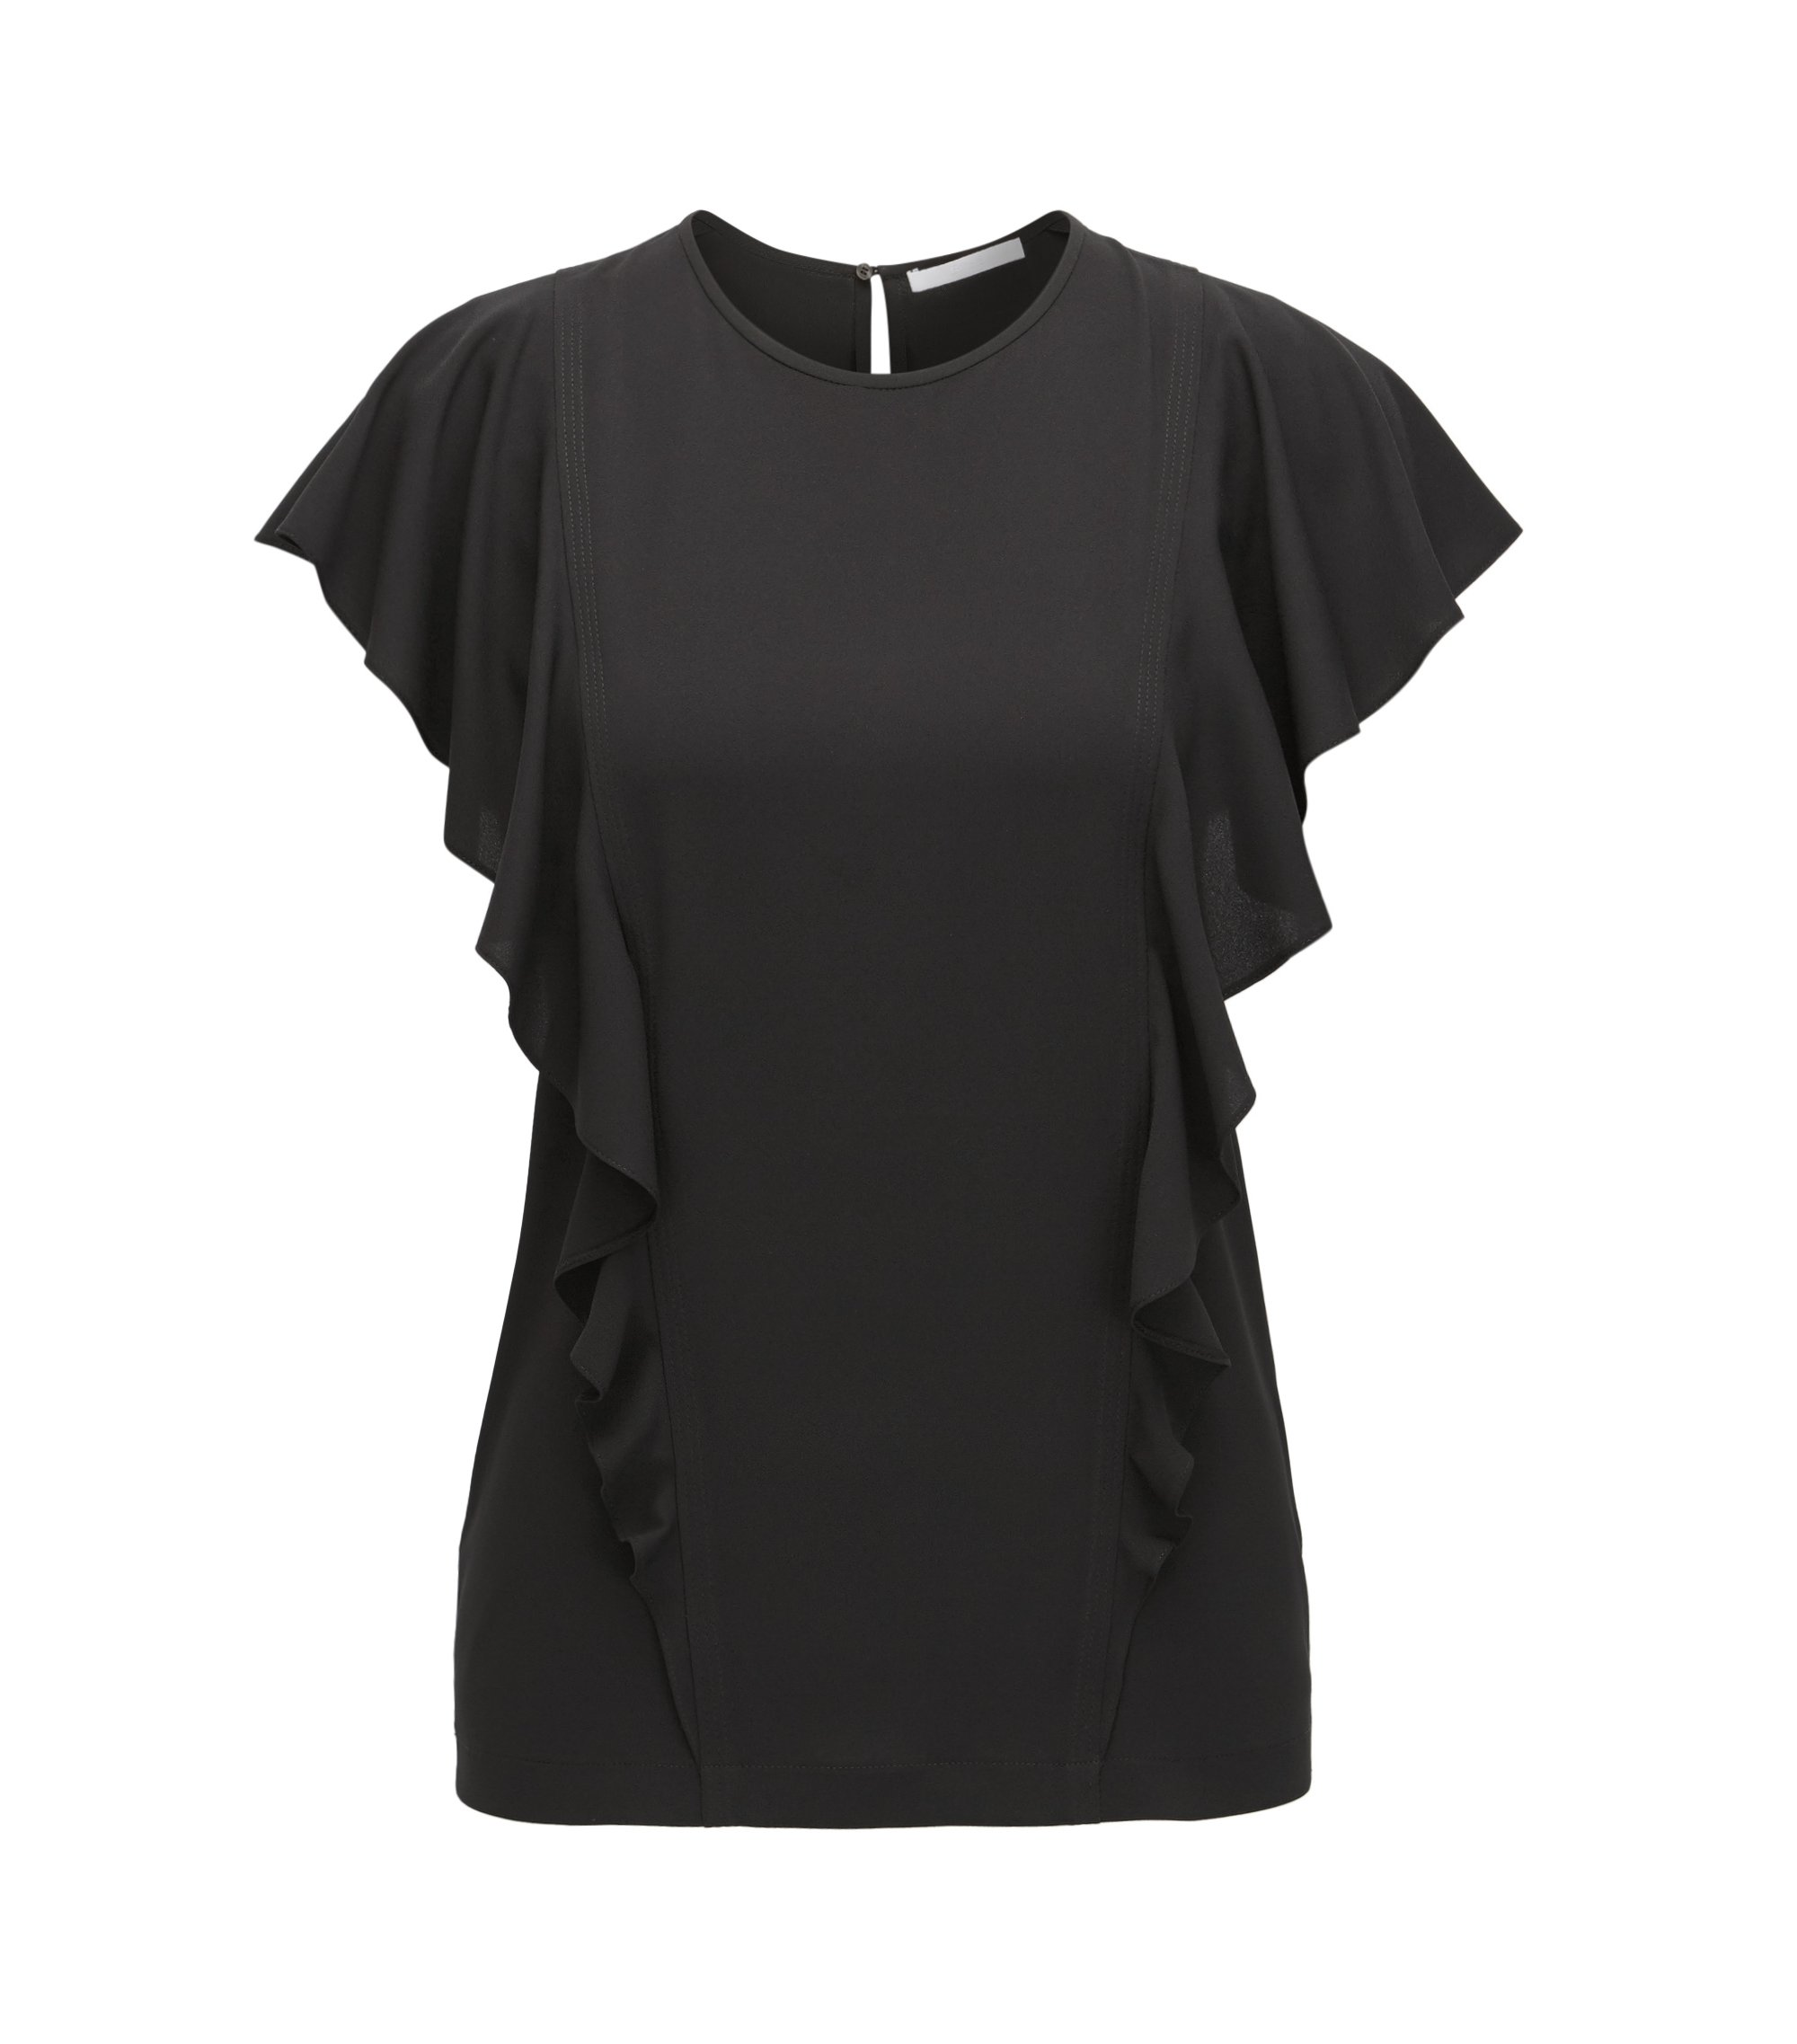 Ruffled Top | Ipapilia, Black